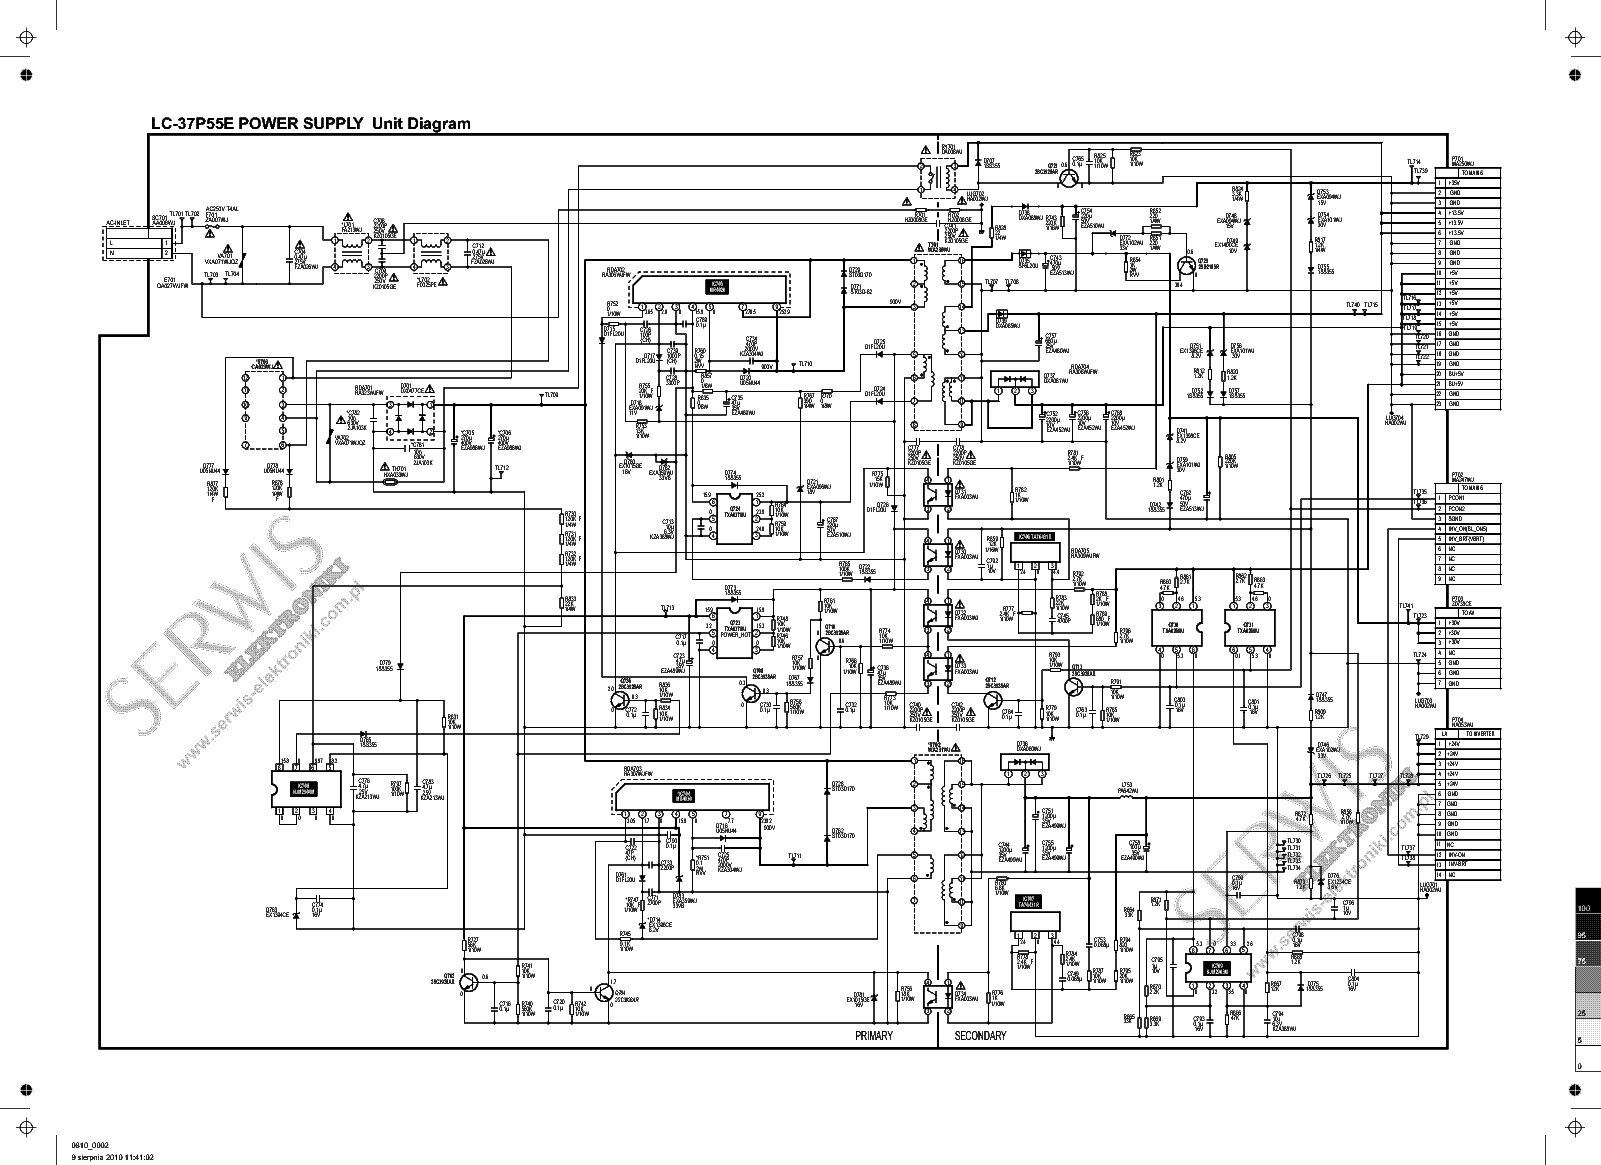 Lc 37p55e Inverter Schematic Sch Service Manual Download